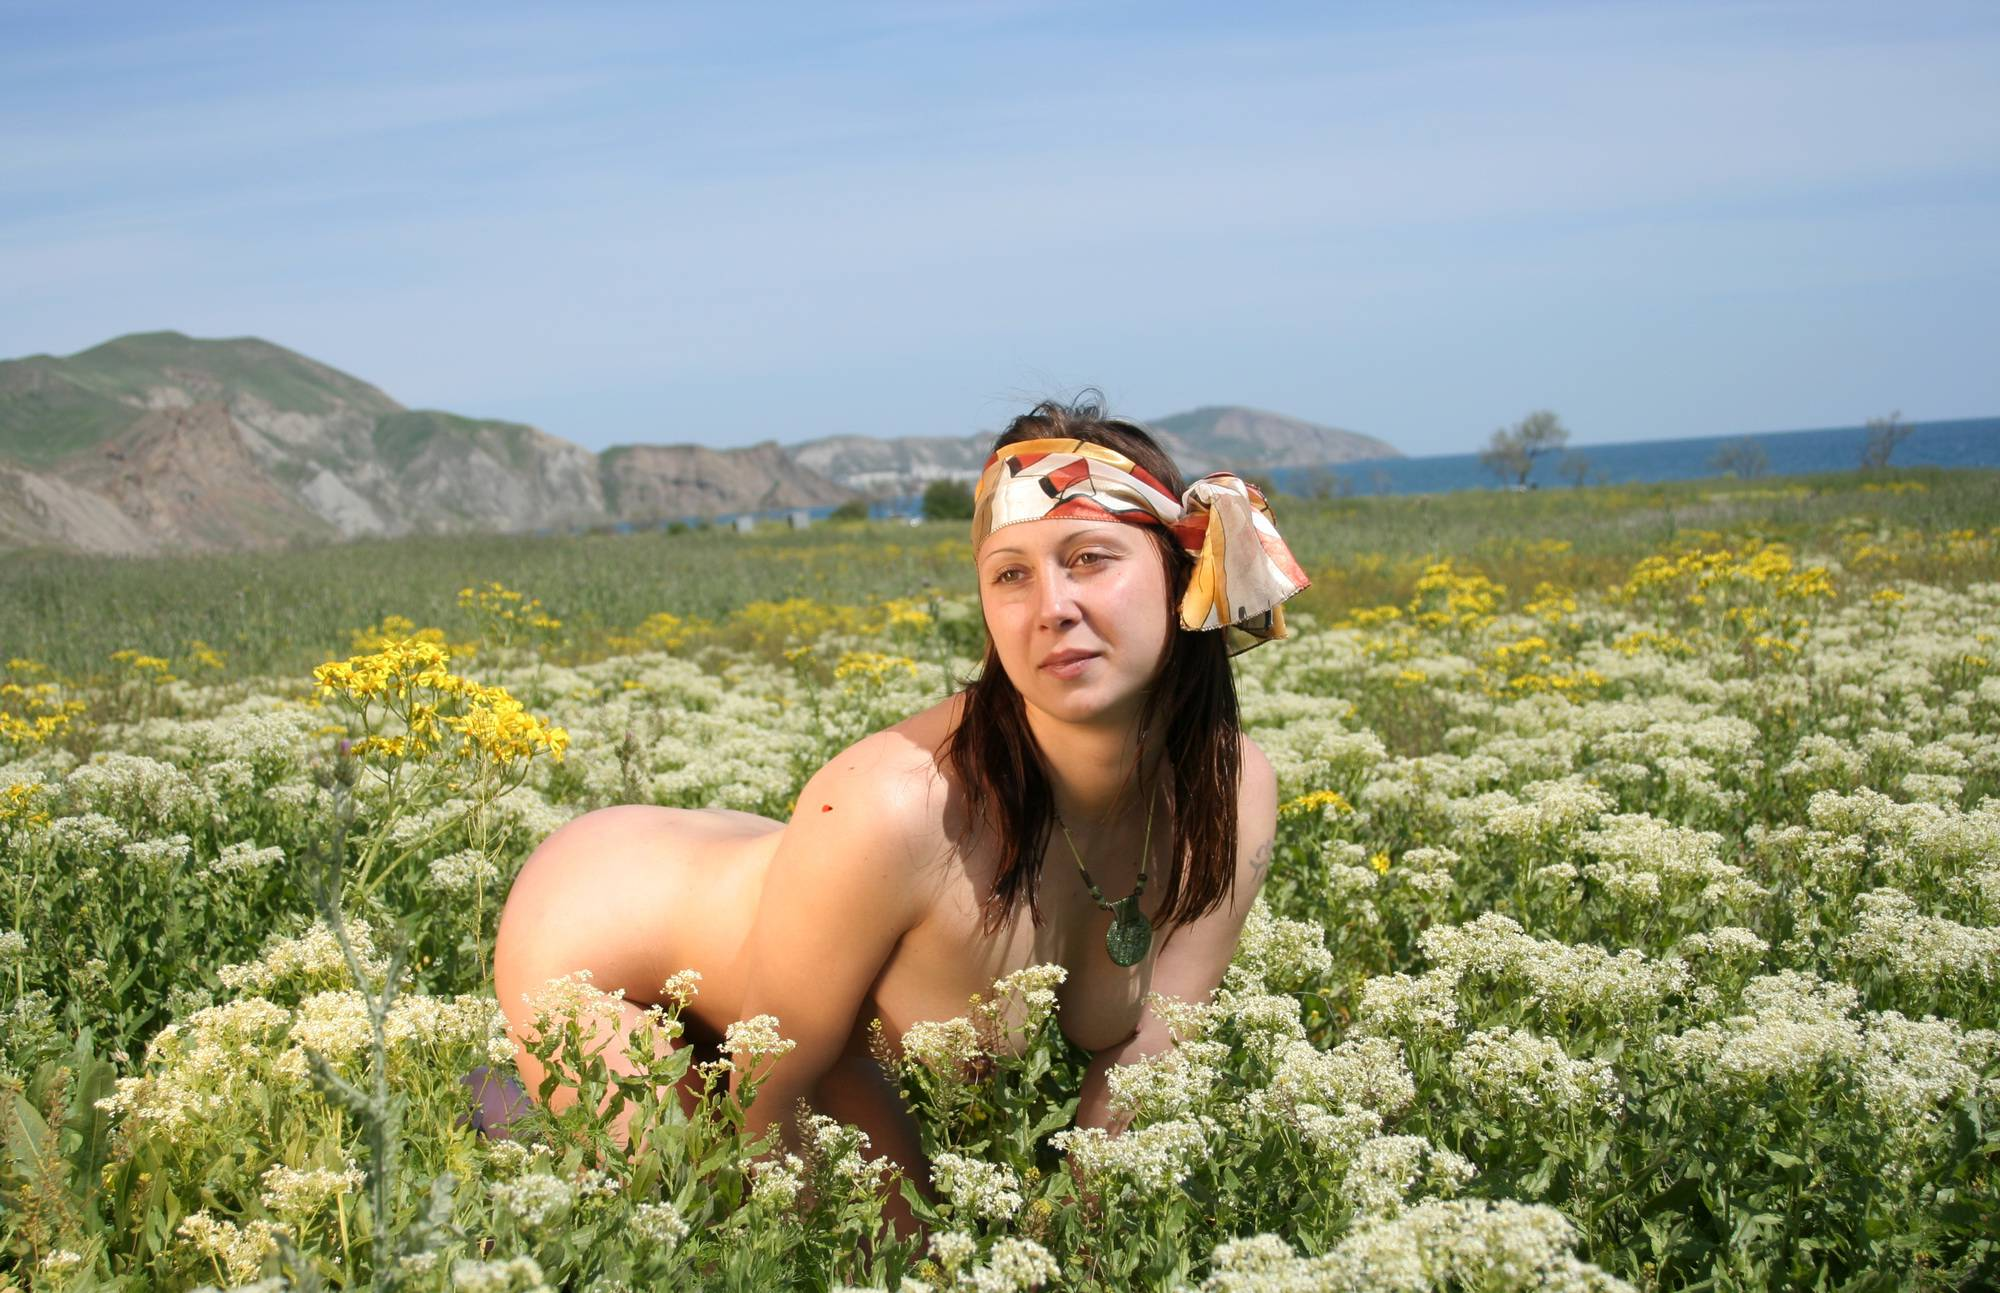 Pure Nudism Images-Naturist Fields of Dreams - 3